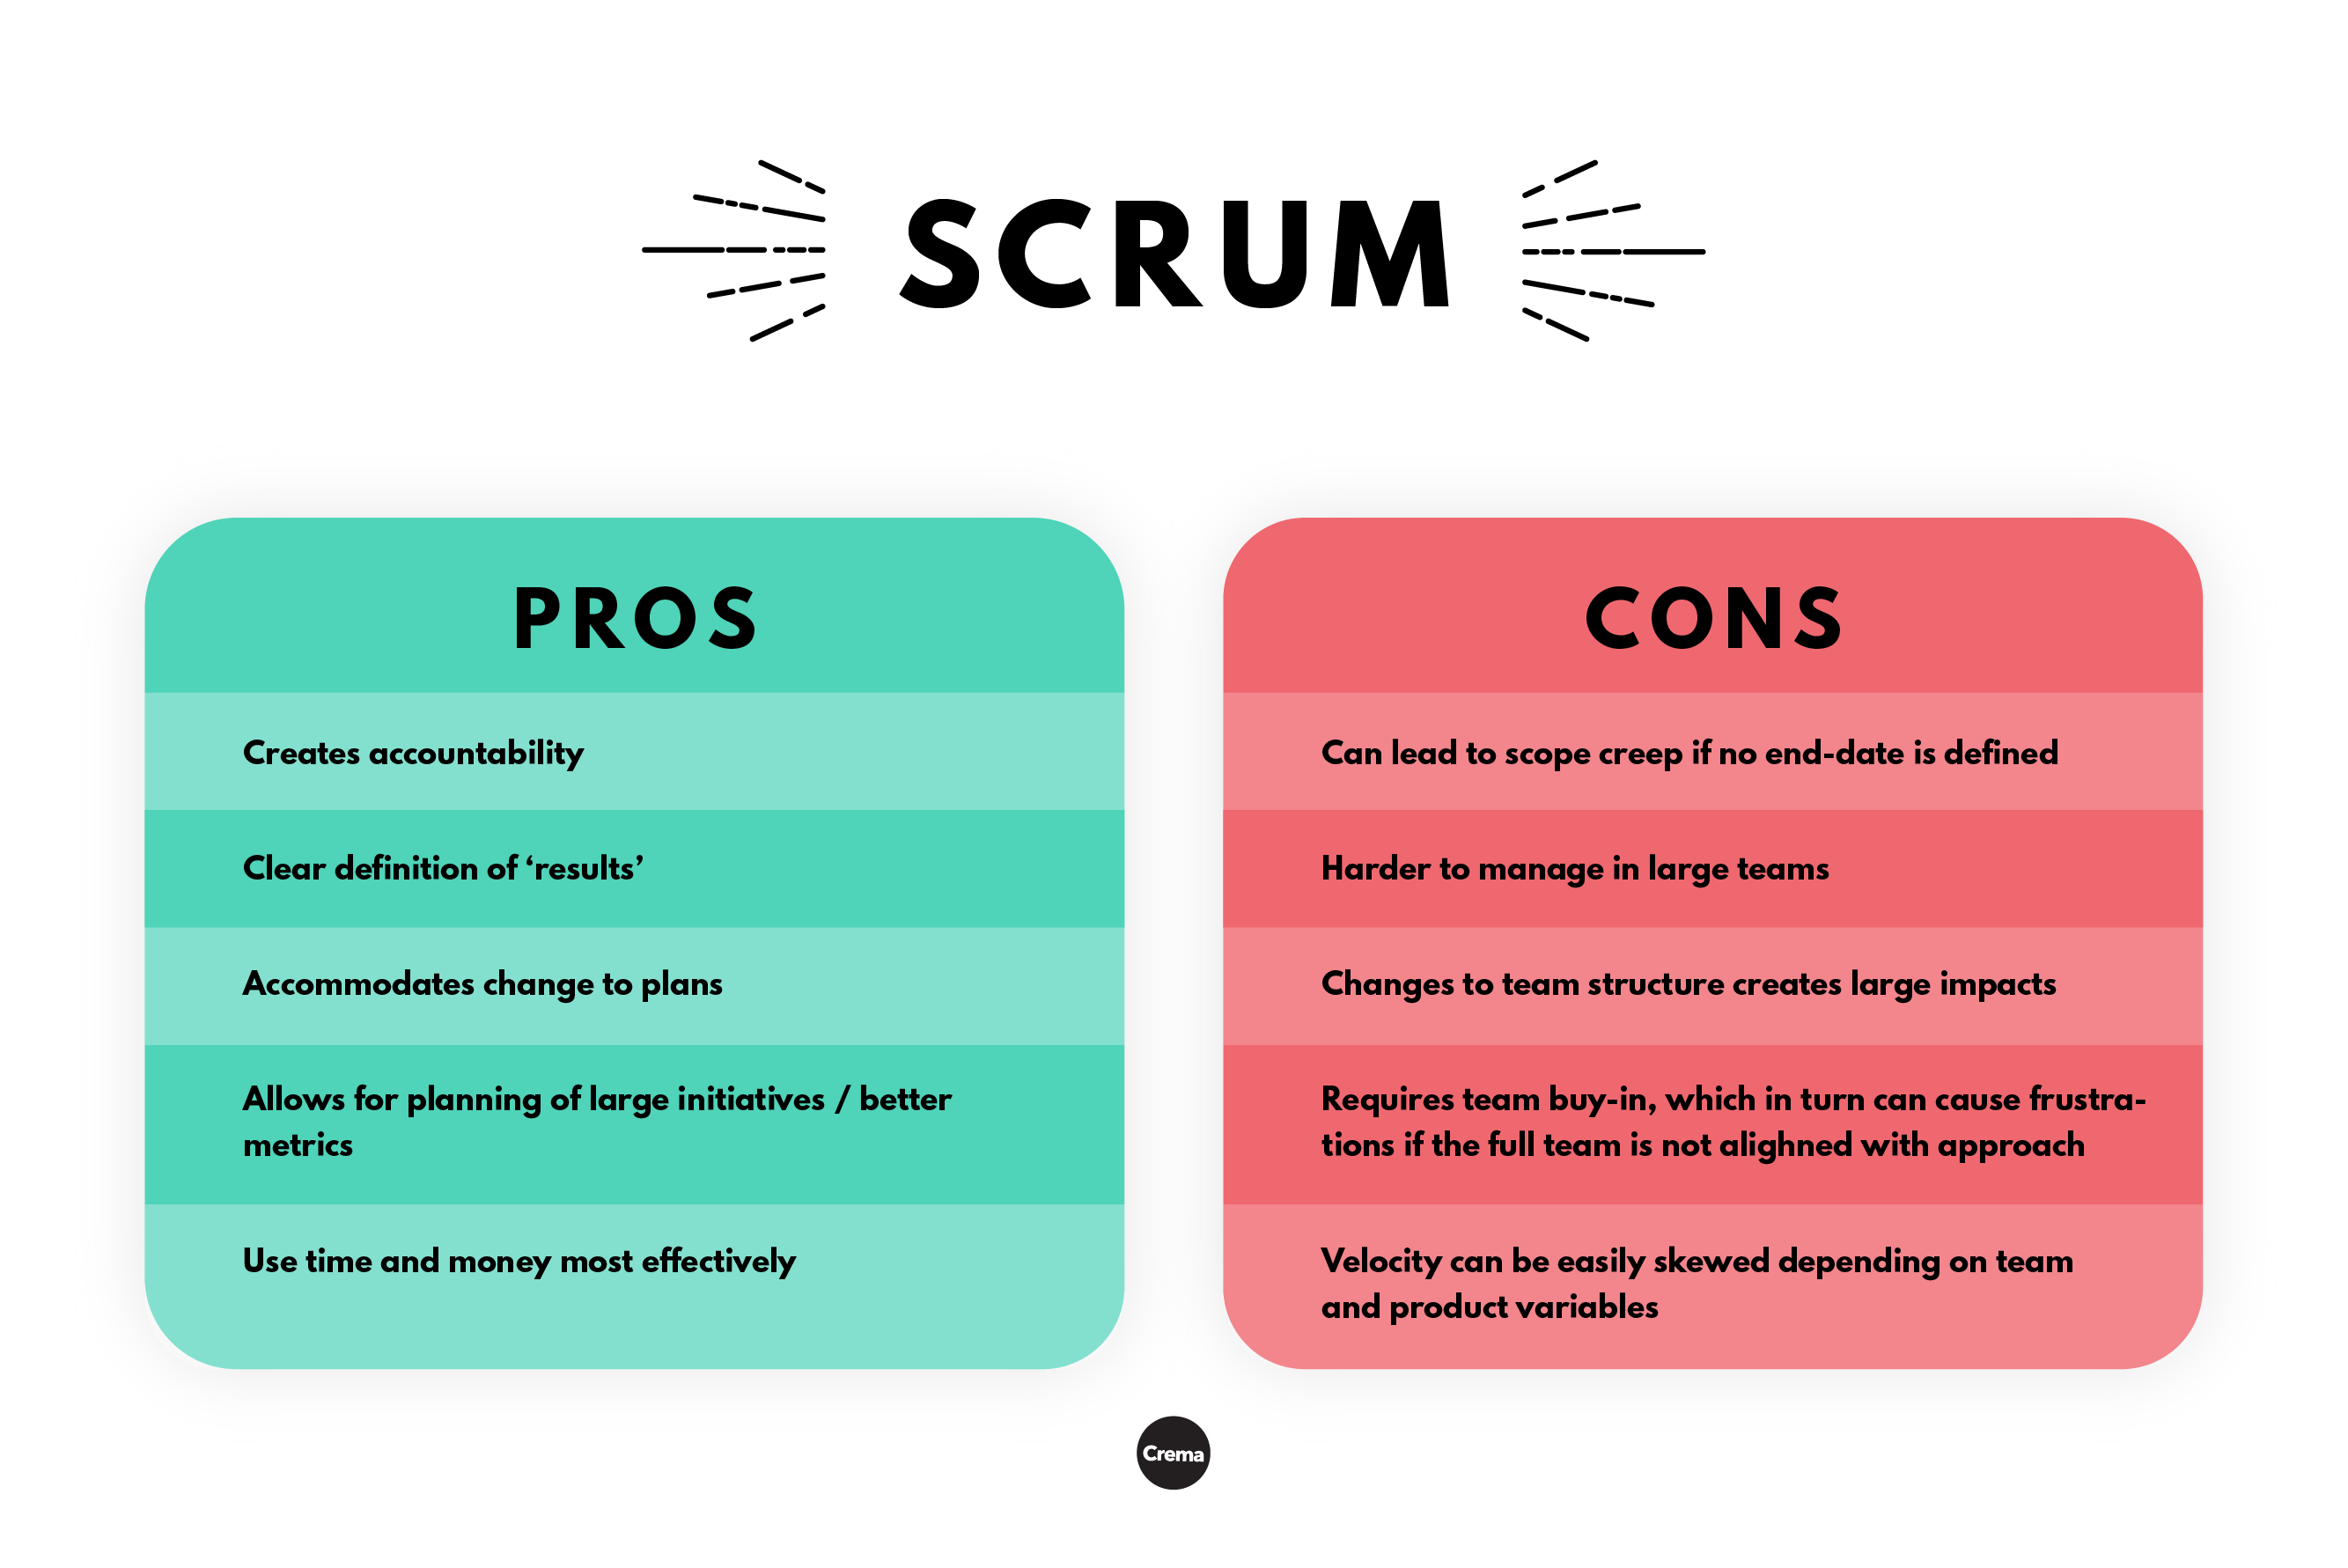 scrum pros and cons chart in pink and green